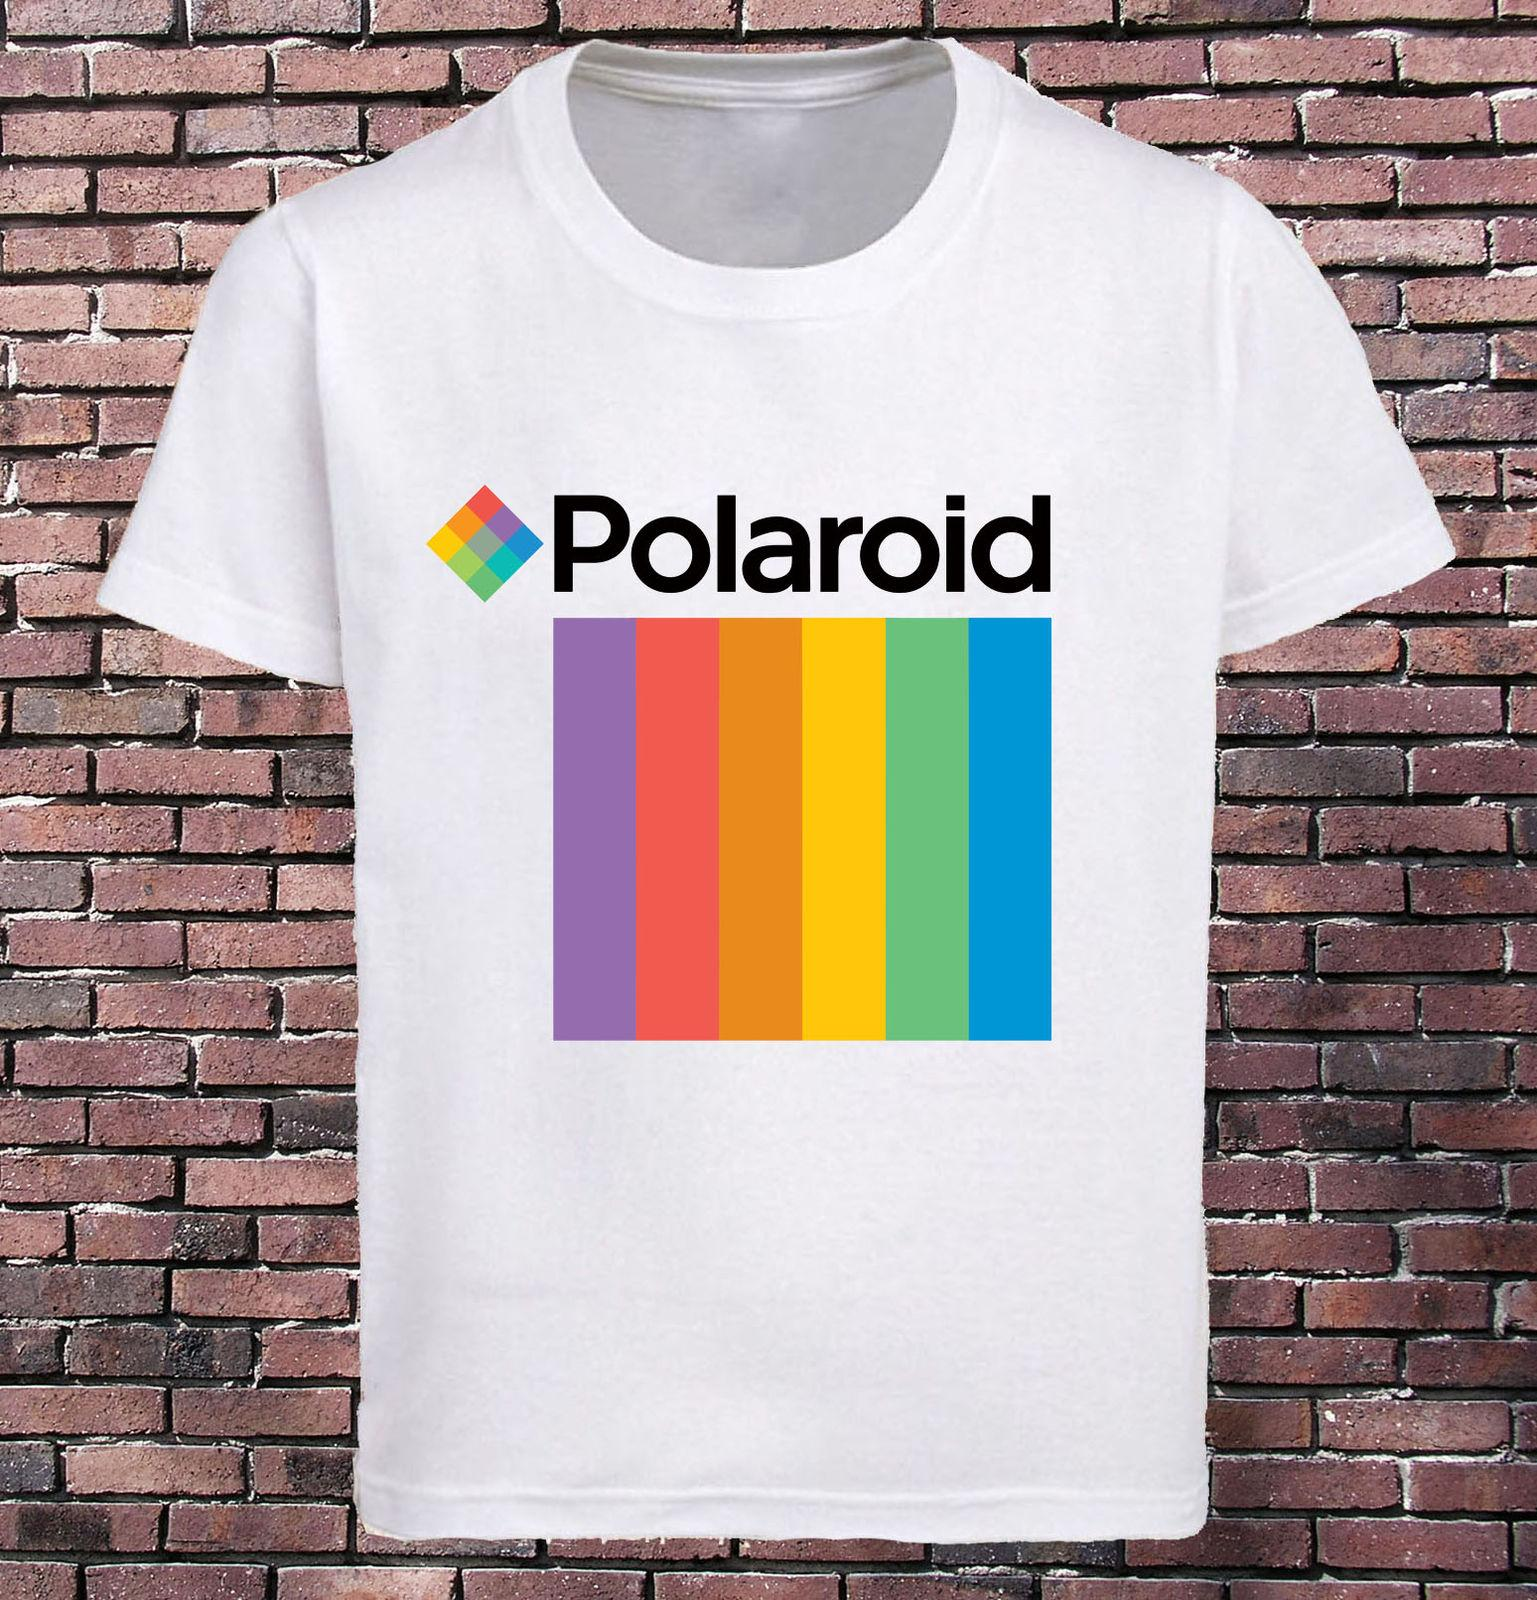 a6fd9e3ac Polaroid Film Camera Retro Photographer T Shirts Cool Xxxtentacion Marcus  And Martinus Tshirt Discout Hot New Top T Shirt Best Funny Shirts Funny  Print ...